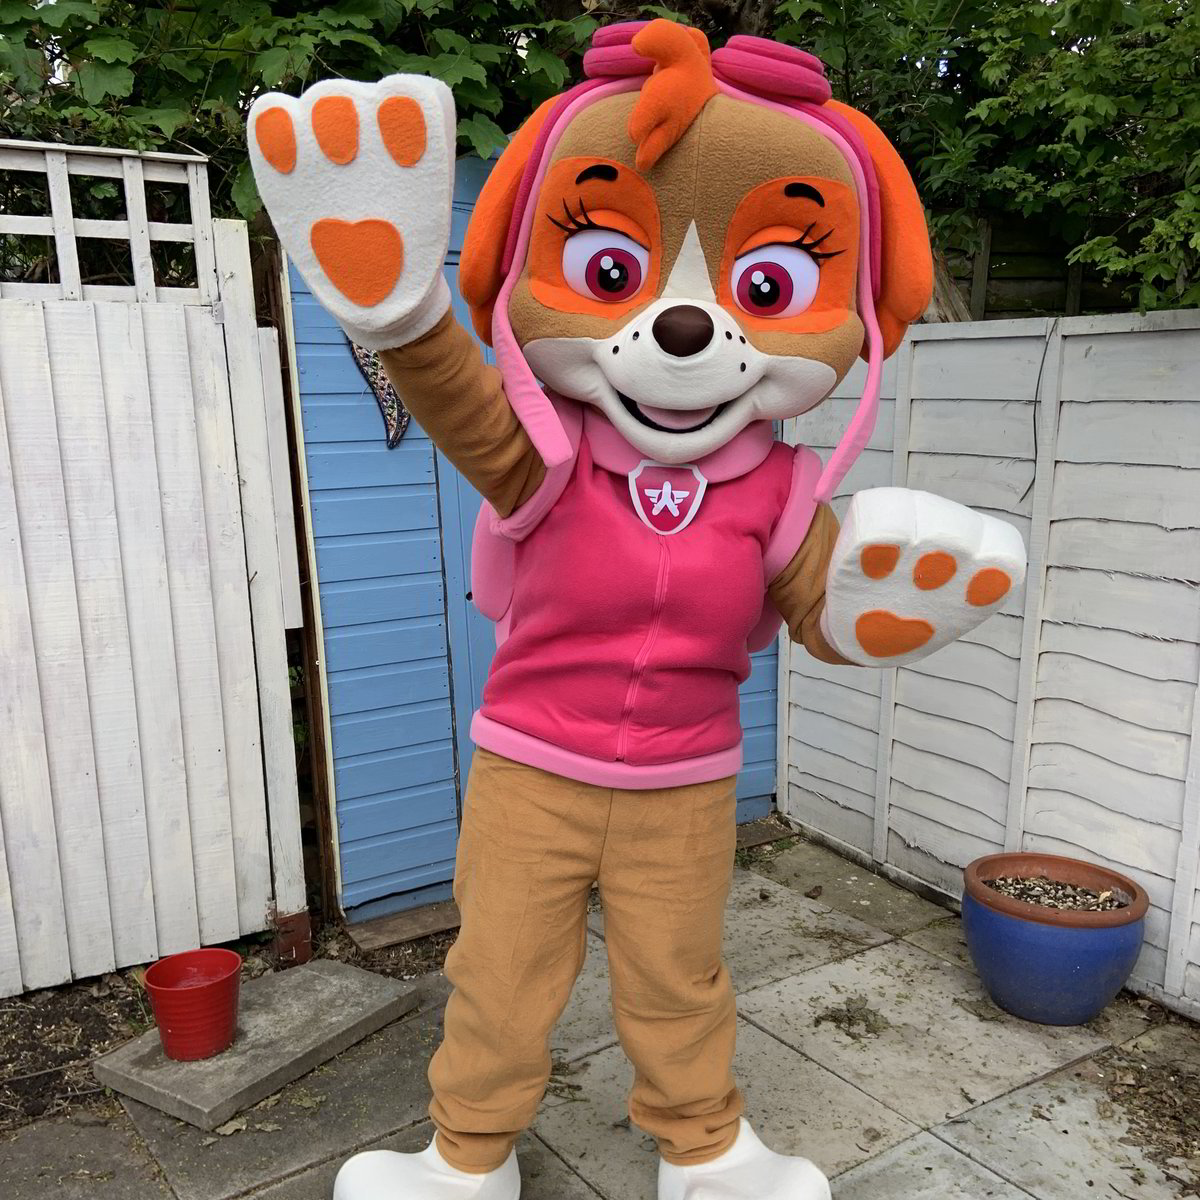 skye, paw patrol, loughton, chigwell, brentwood, warely, ongar, wanstead, barking, london,  essex